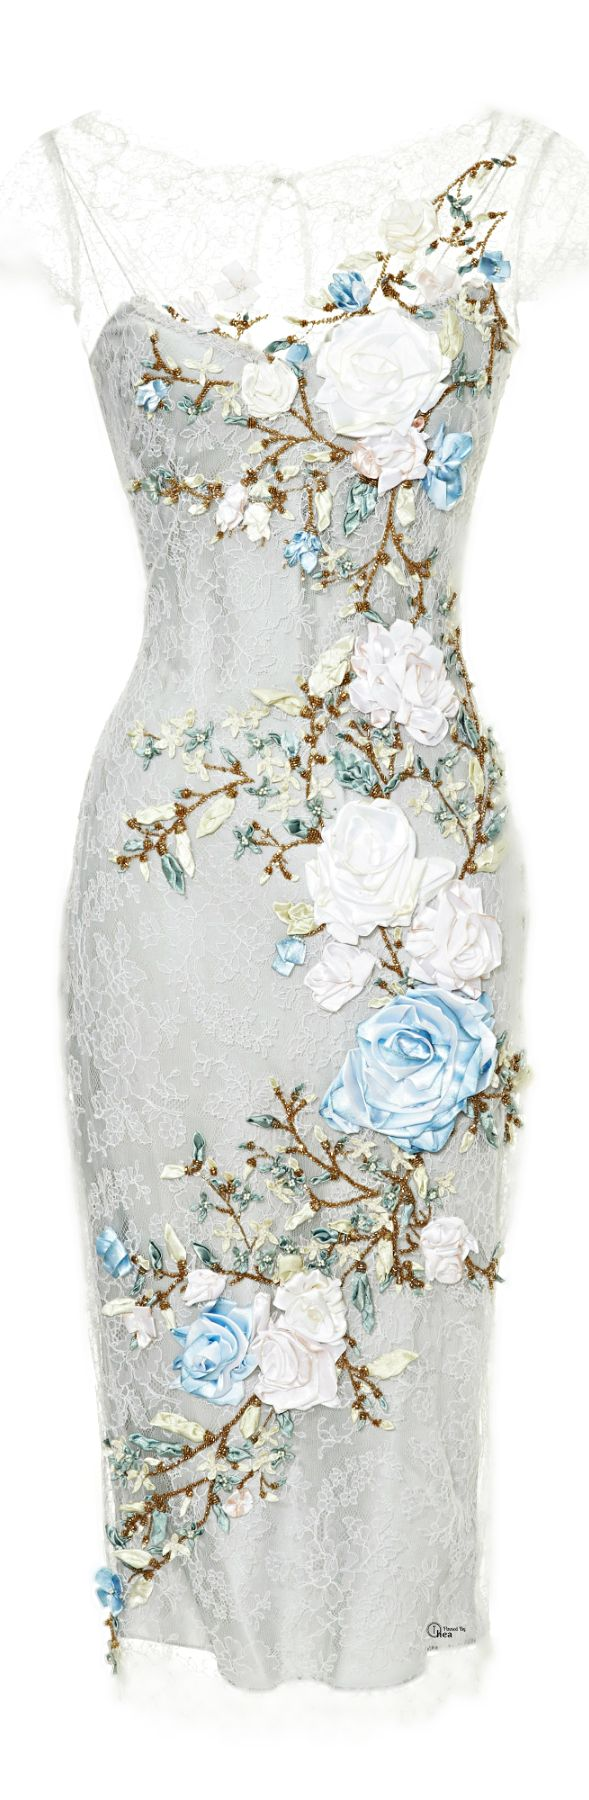 Michal negrin wedding dress   best Beautiful Fashions images on Pinterest  Formal prom